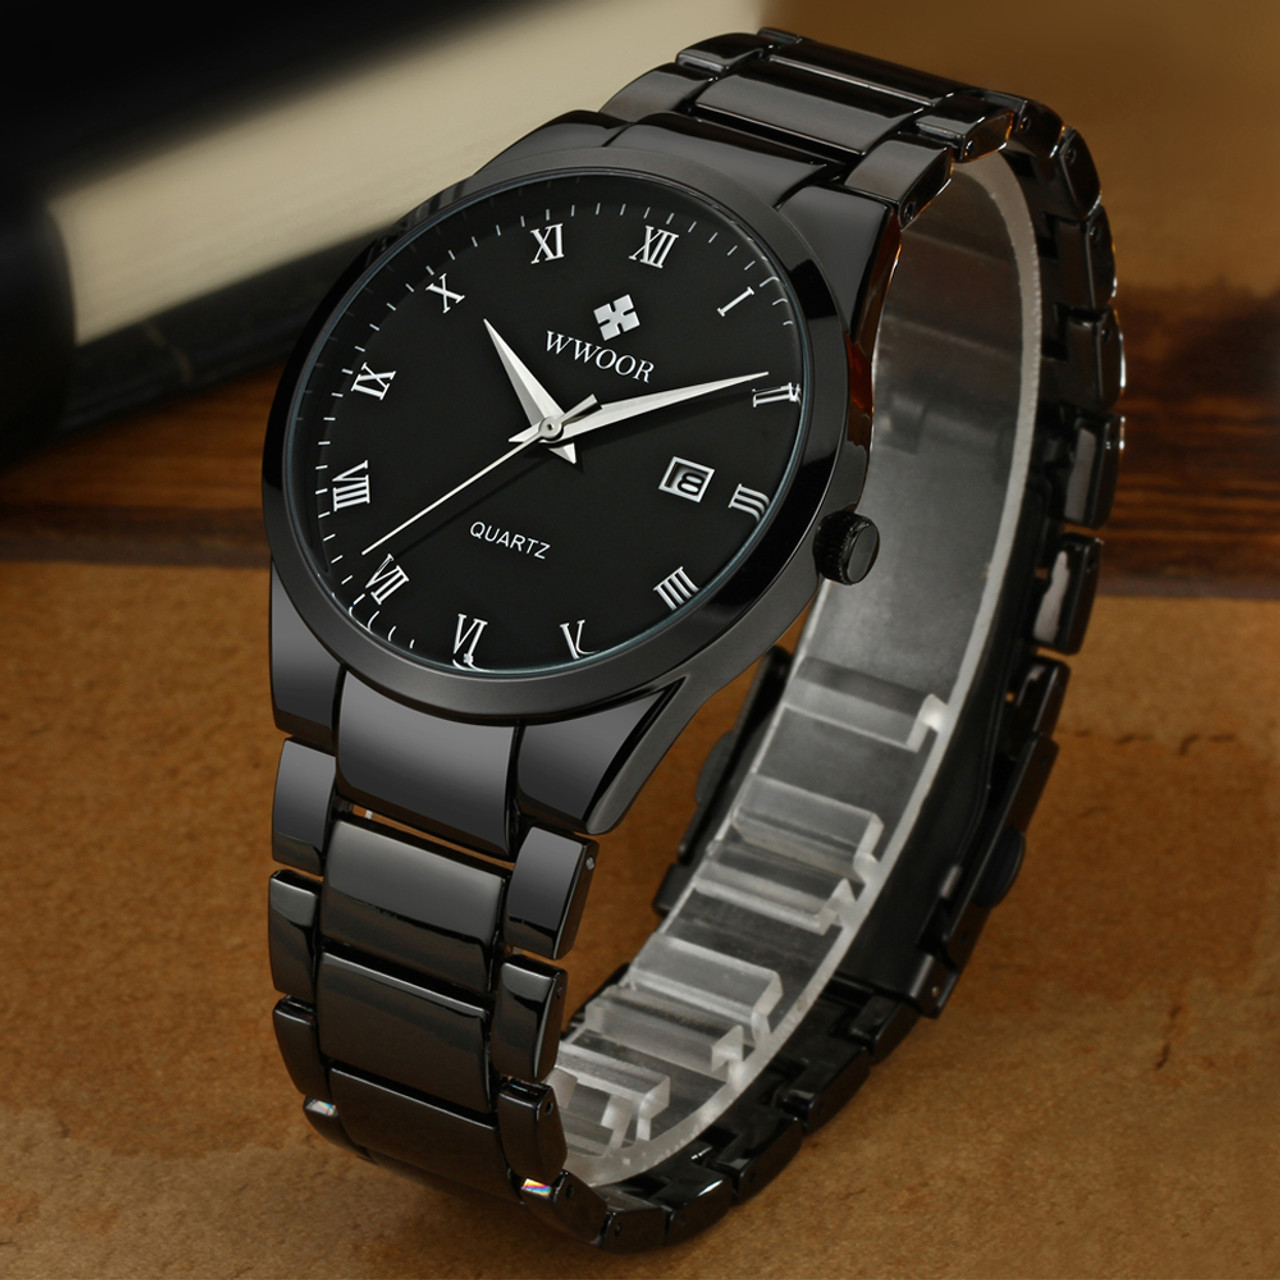 elegant item fashion in sanda ladies from women luxury sports sale watches blue digital sky kimio new quartz s brand led g simple waterproof style stainless military bracelet watch steel men shock